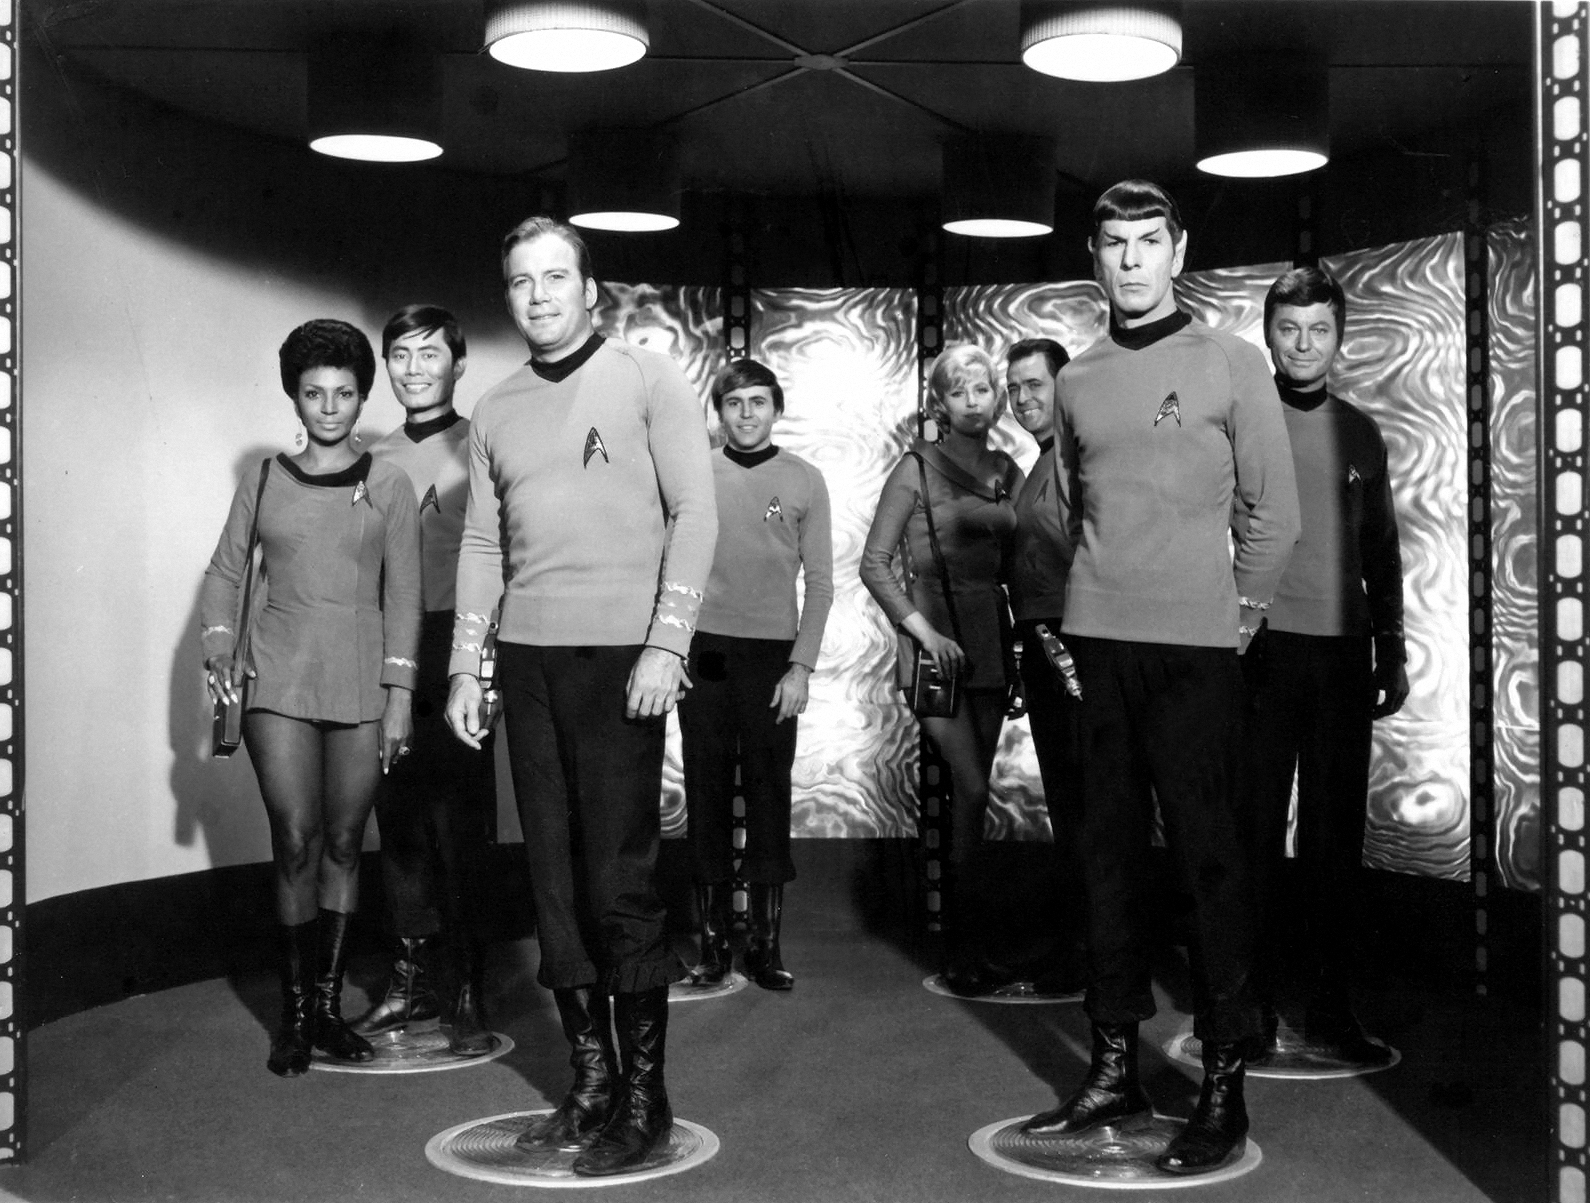 Yep. The 24th century was colored Black and White at the RantFamily household, just like previous centuries